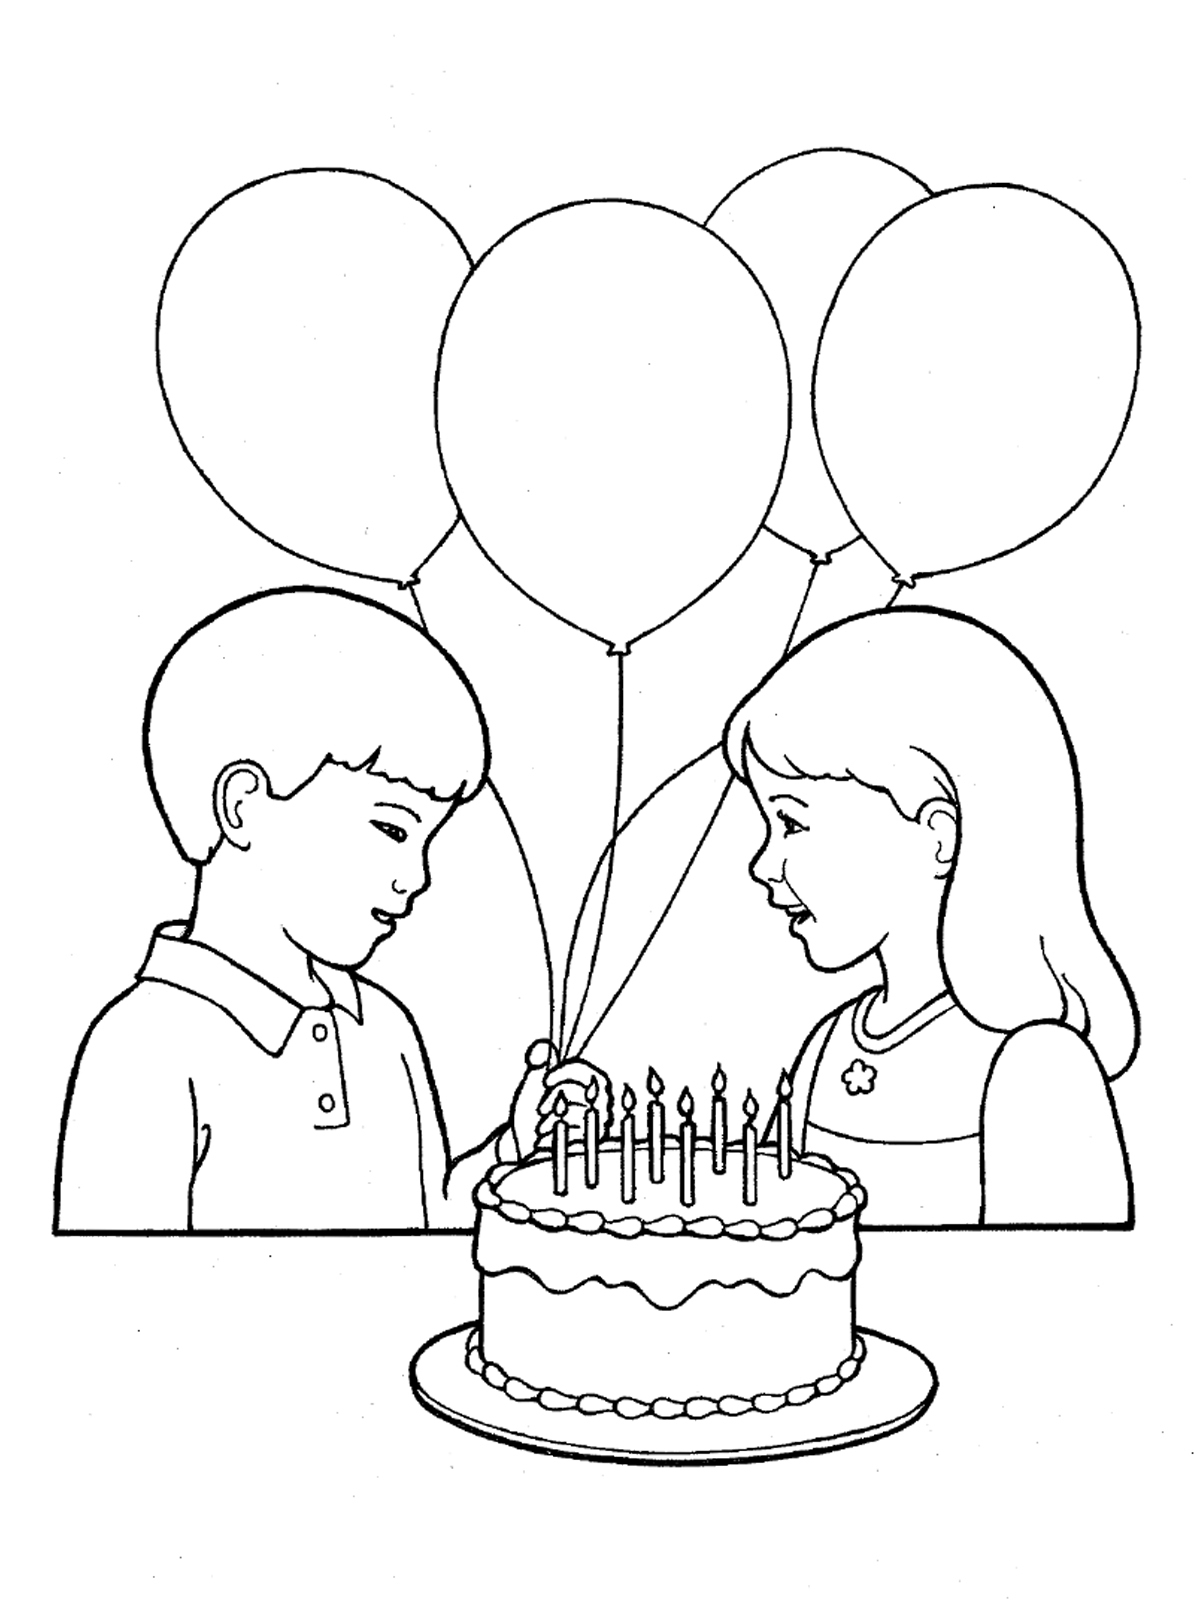 drawing pictures of birthday party ; drawing-pictures-of-birthday-party-primary-children-birthday